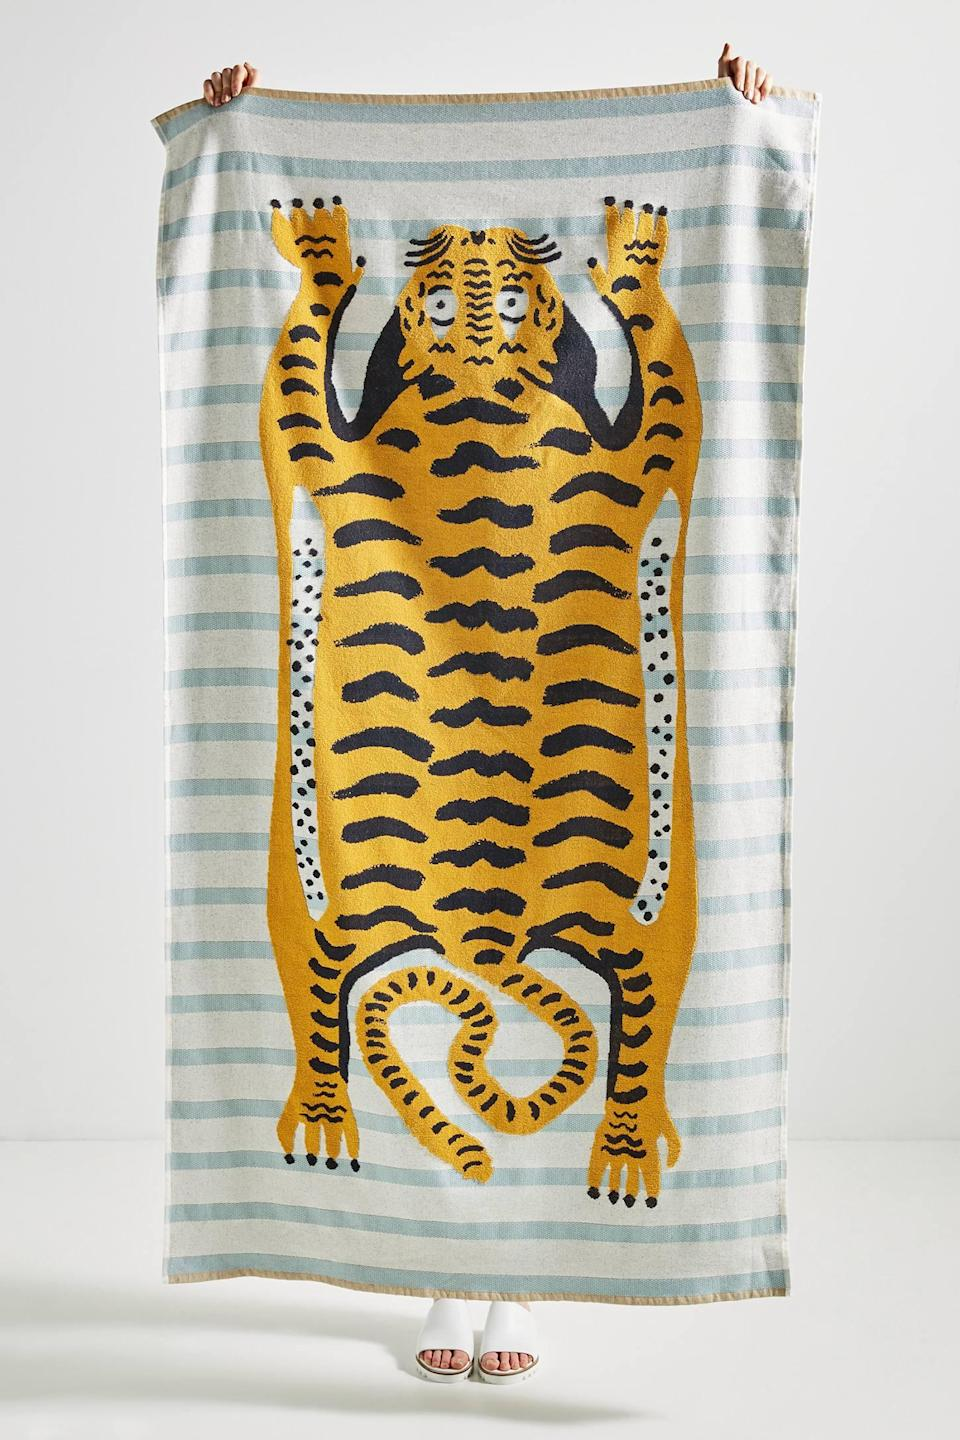 """<p><strong>Anthropologie</strong></p><p>anthropologie.com</p><p><strong>$54.00</strong></p><p><a href=""""https://go.redirectingat.com?id=74968X1596630&url=https%3A%2F%2Fwww.anthropologie.com%2Fshop%2Ftiger-beach-towel&sref=https%3A%2F%2Fwww.cosmopolitan.com%2Flifestyle%2Fg26323465%2Fbest-beach-towels%2F"""" rel=""""nofollow noopener"""" target=""""_blank"""" data-ylk=""""slk:Shop Now"""" class=""""link rapid-noclick-resp"""">Shop Now</a></p><p>This beauty mixes a timeless stripe with a wild tiger drawing. It's kinda like your vibe classic, but a little scary.</p>"""